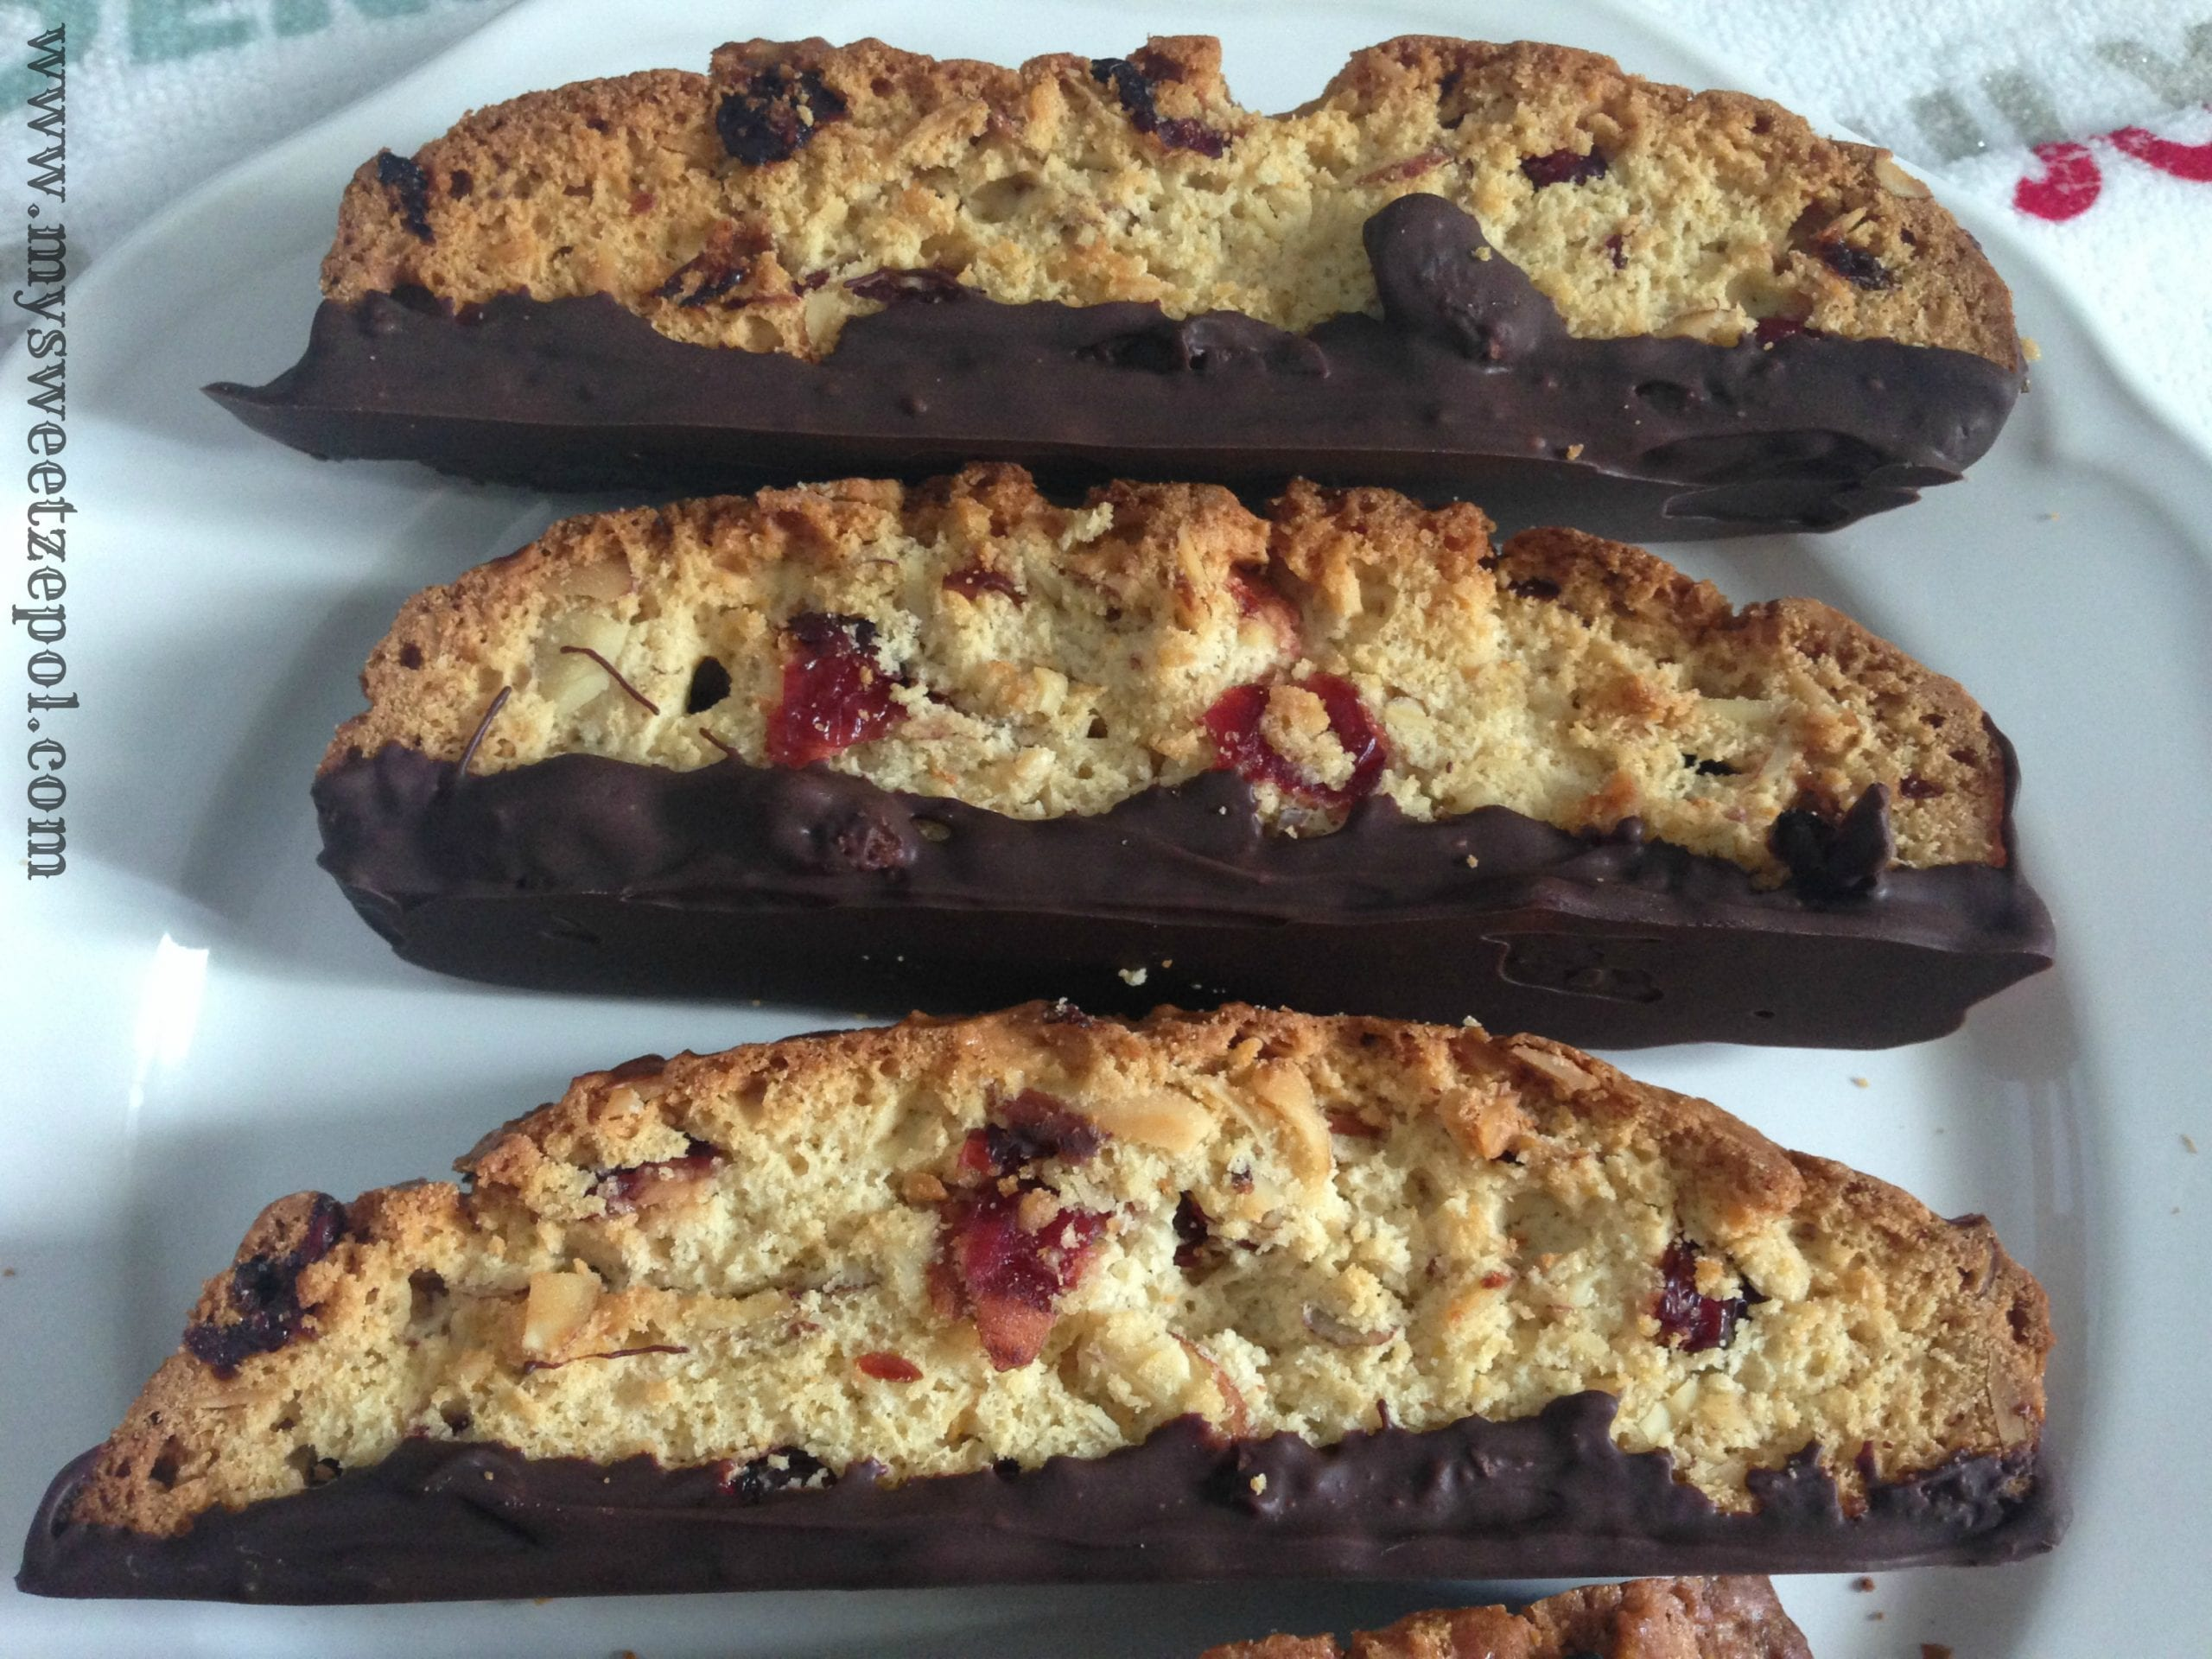 31-Days-of-Cookies-Almond-and-Cranberry-Biscotti-with-a-chocolate ...